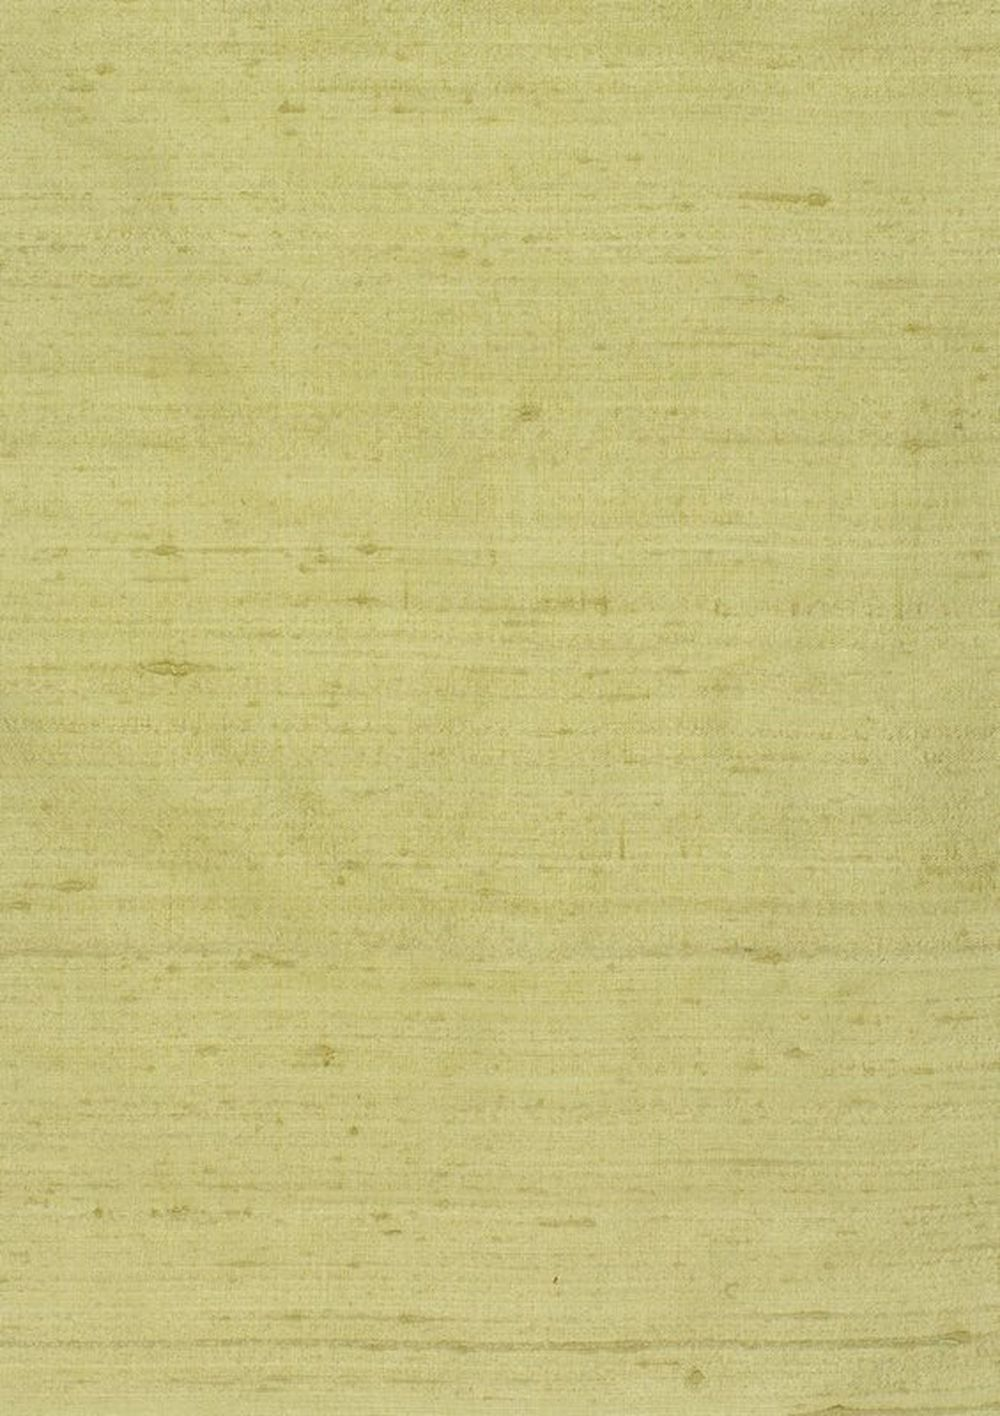 Photo of the fabric Indulgence Limeade-219 swatch by Zepel. Use for Curtains. Style of Plain